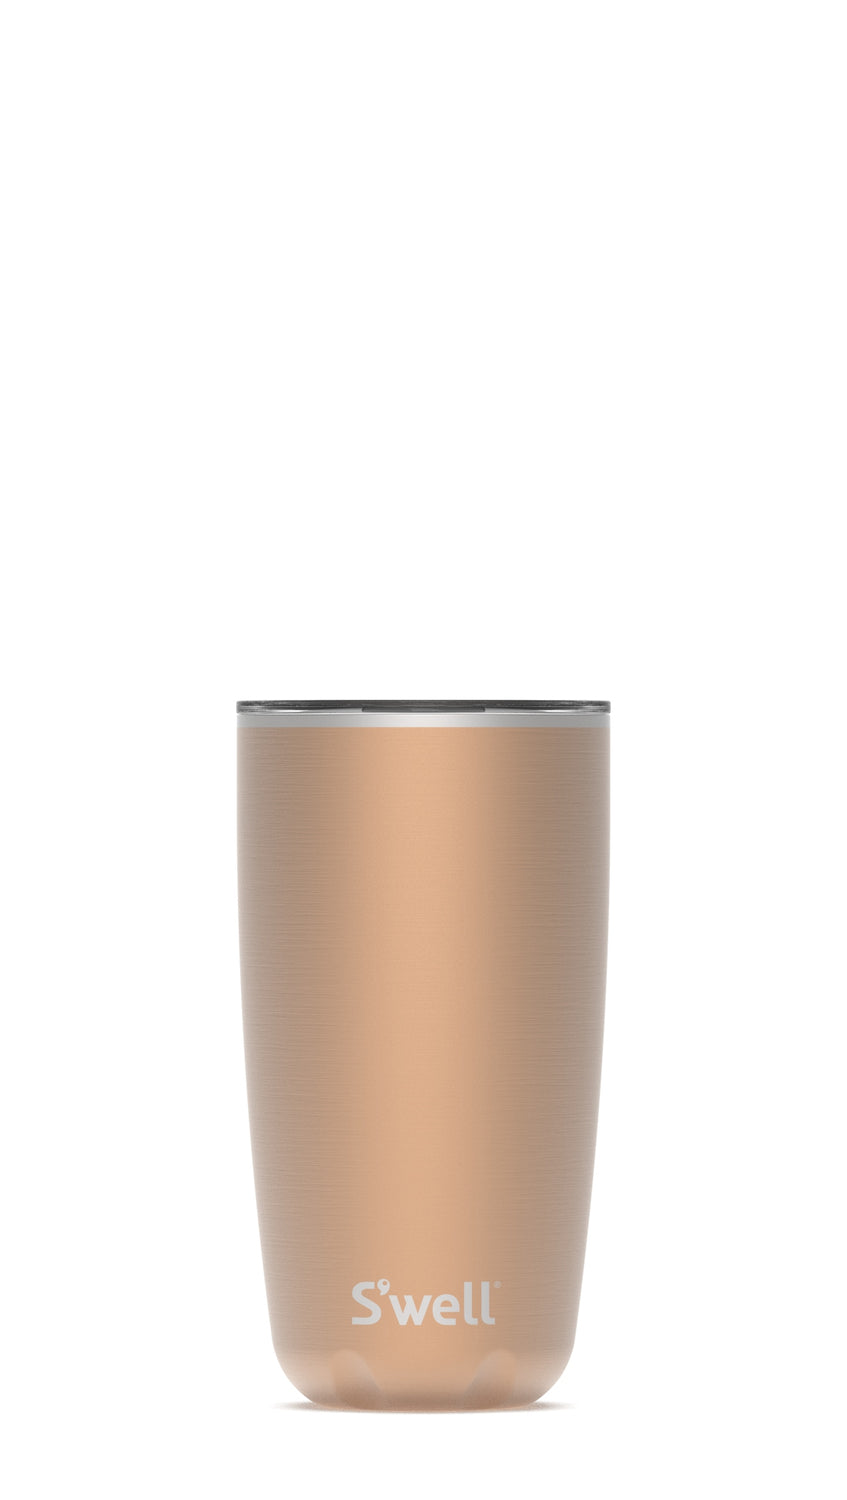 S'well Tumbler with Lid, multiple options